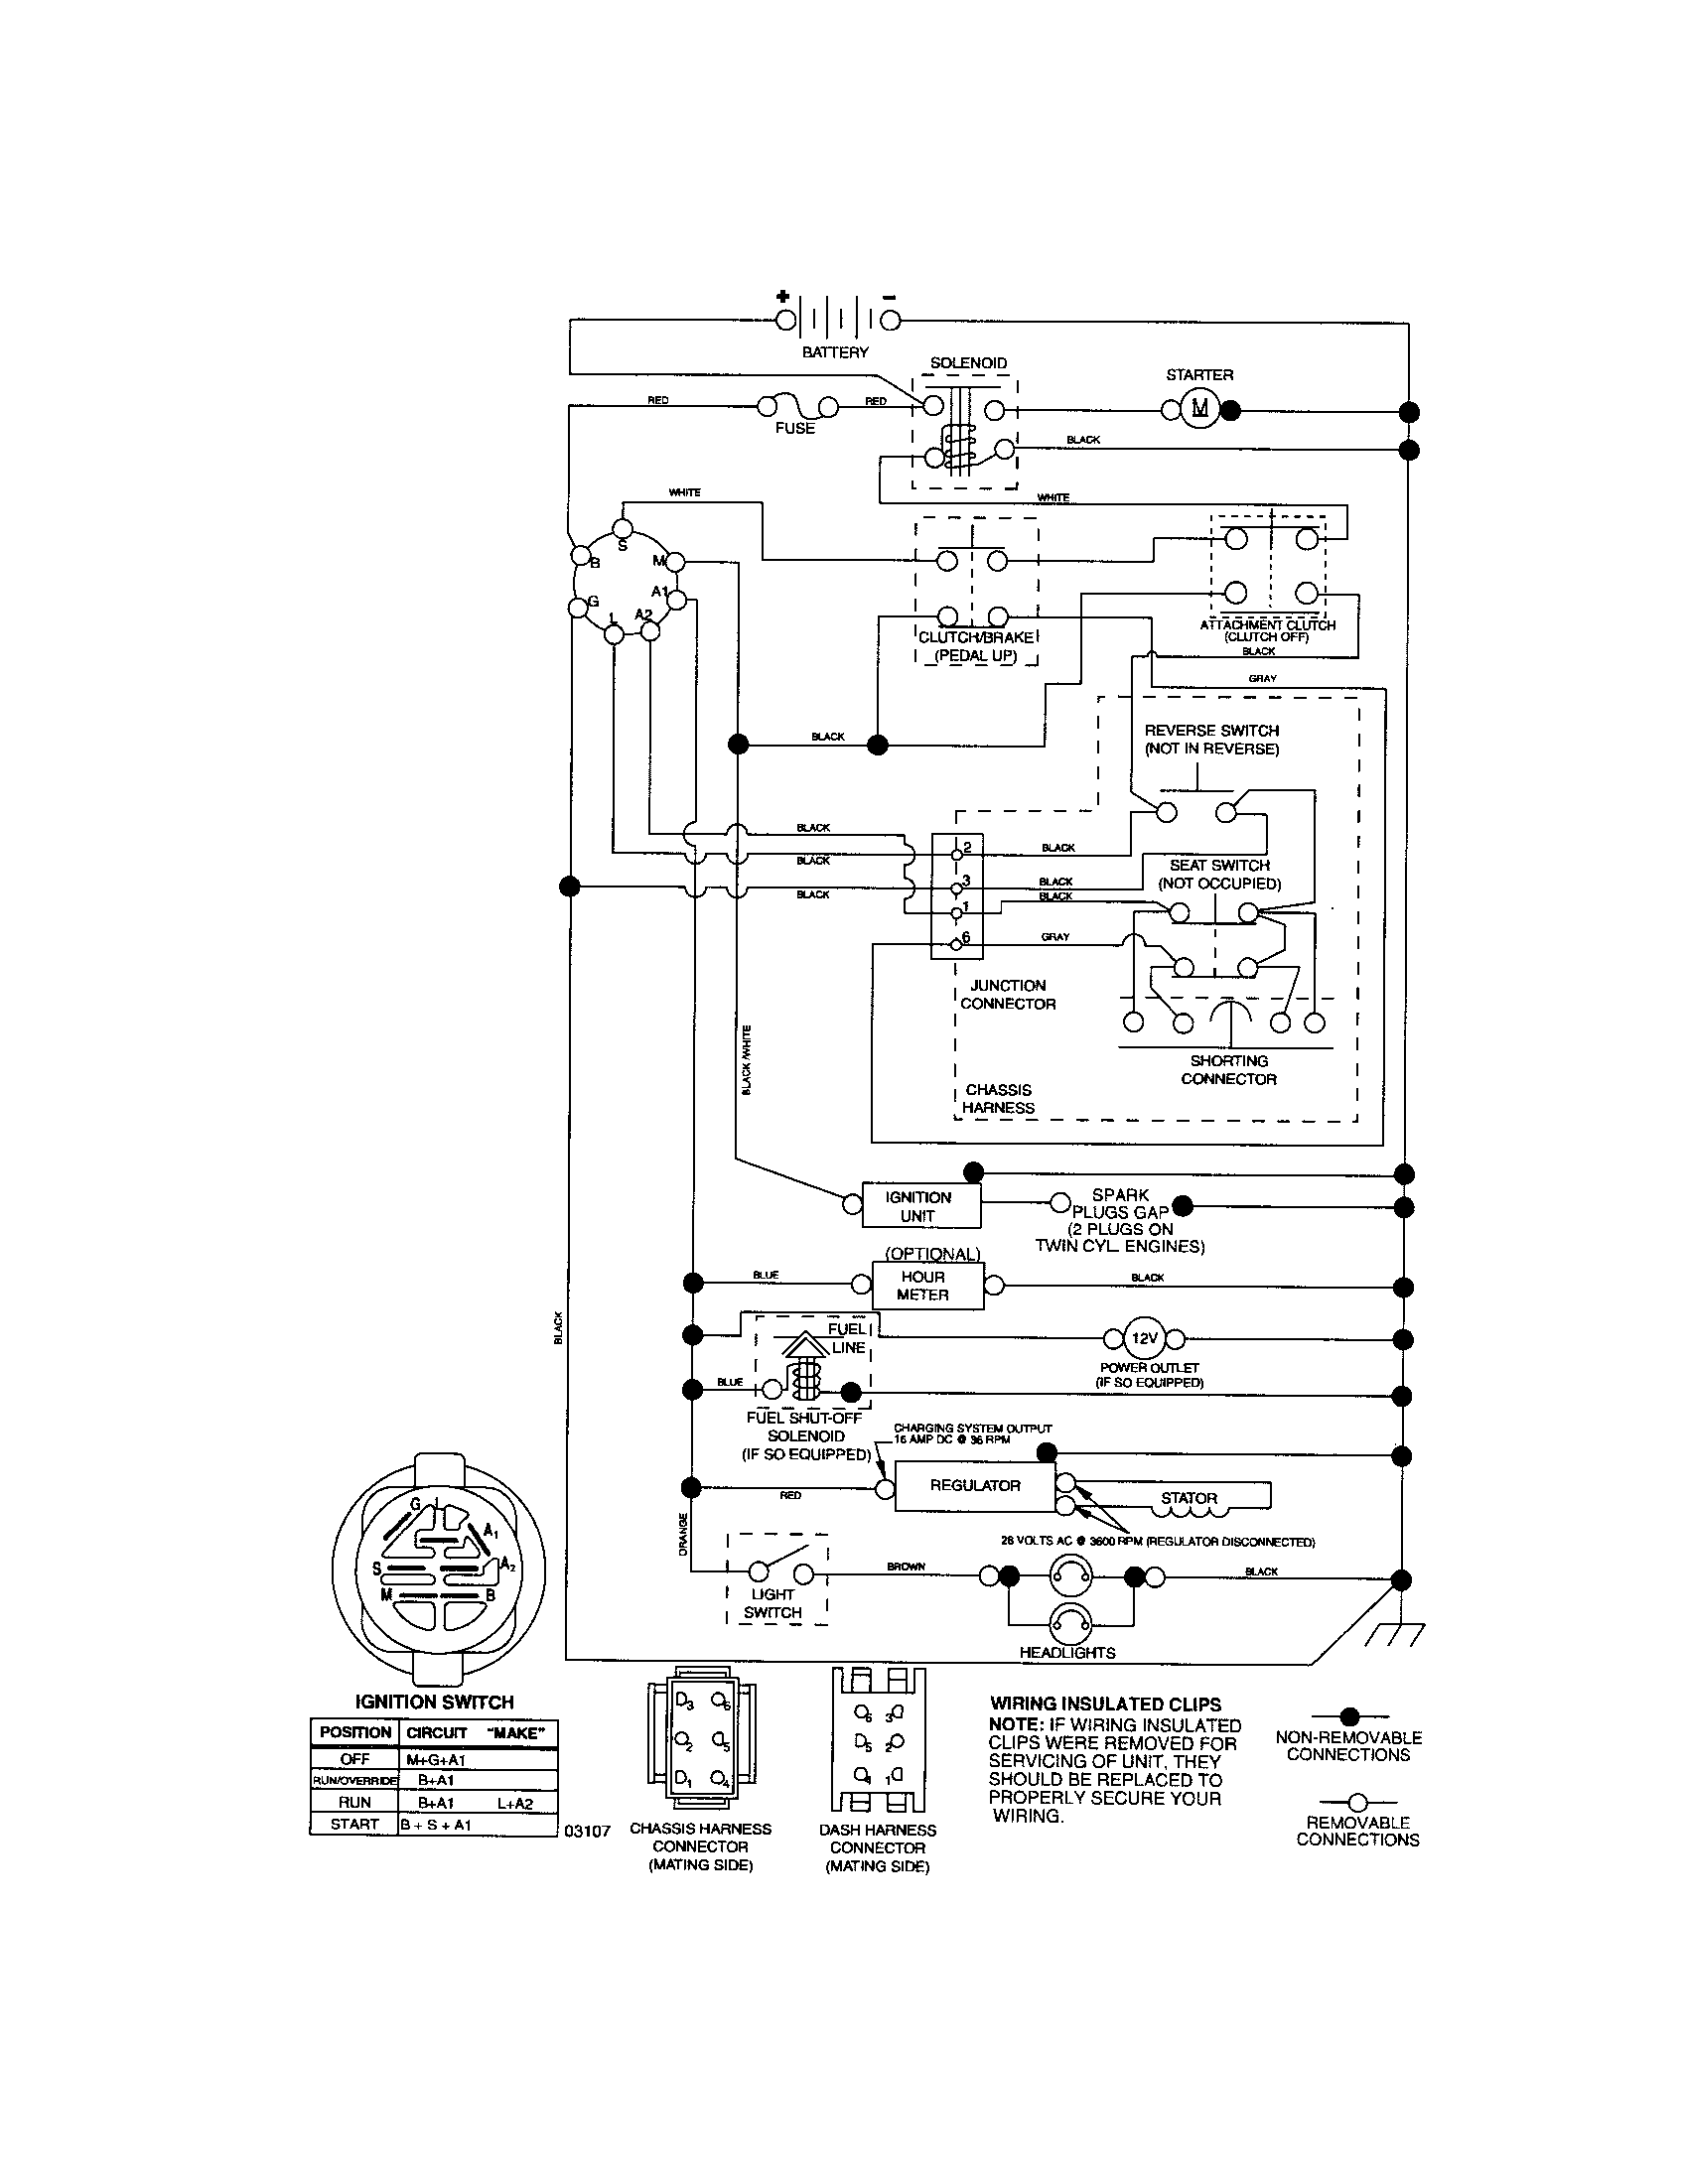 craftsman wiring schematic wire center u2022 rh aktivagroup co craftsman lt1000 wiring schematics craftsman tractor wiring schematic